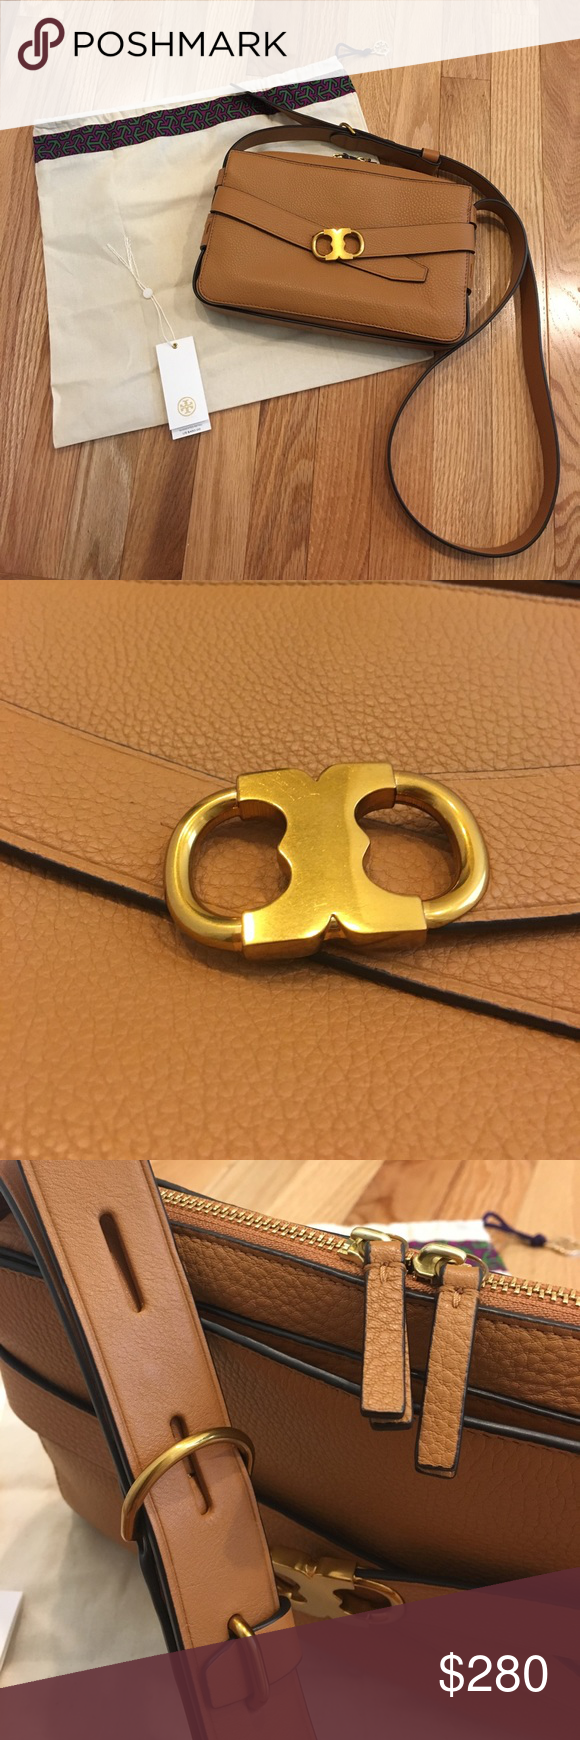 7776c35c5bd Tory Burch Gemini Link Camera Bag in Peanut 💯 Authentic Tory Burch  purchased from ToryBurch.com. Gently used. No rips